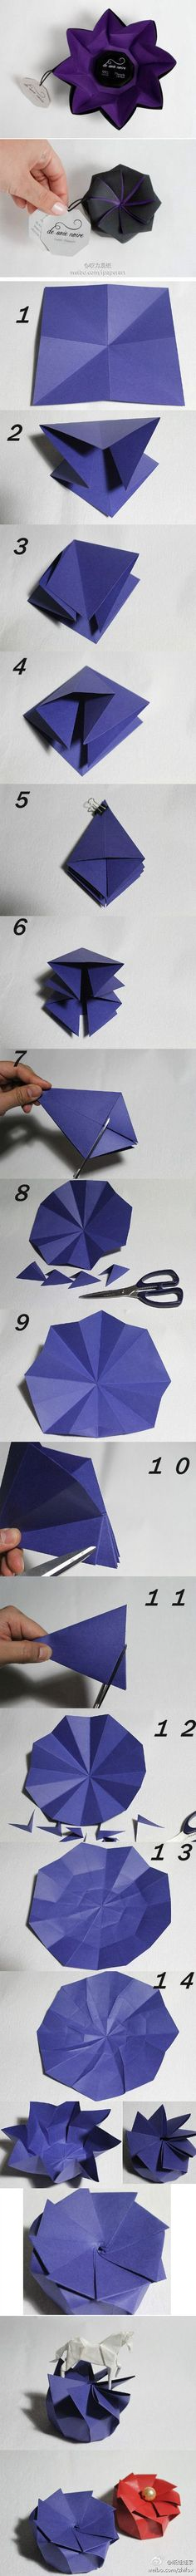 #DIY origami #packaging PD